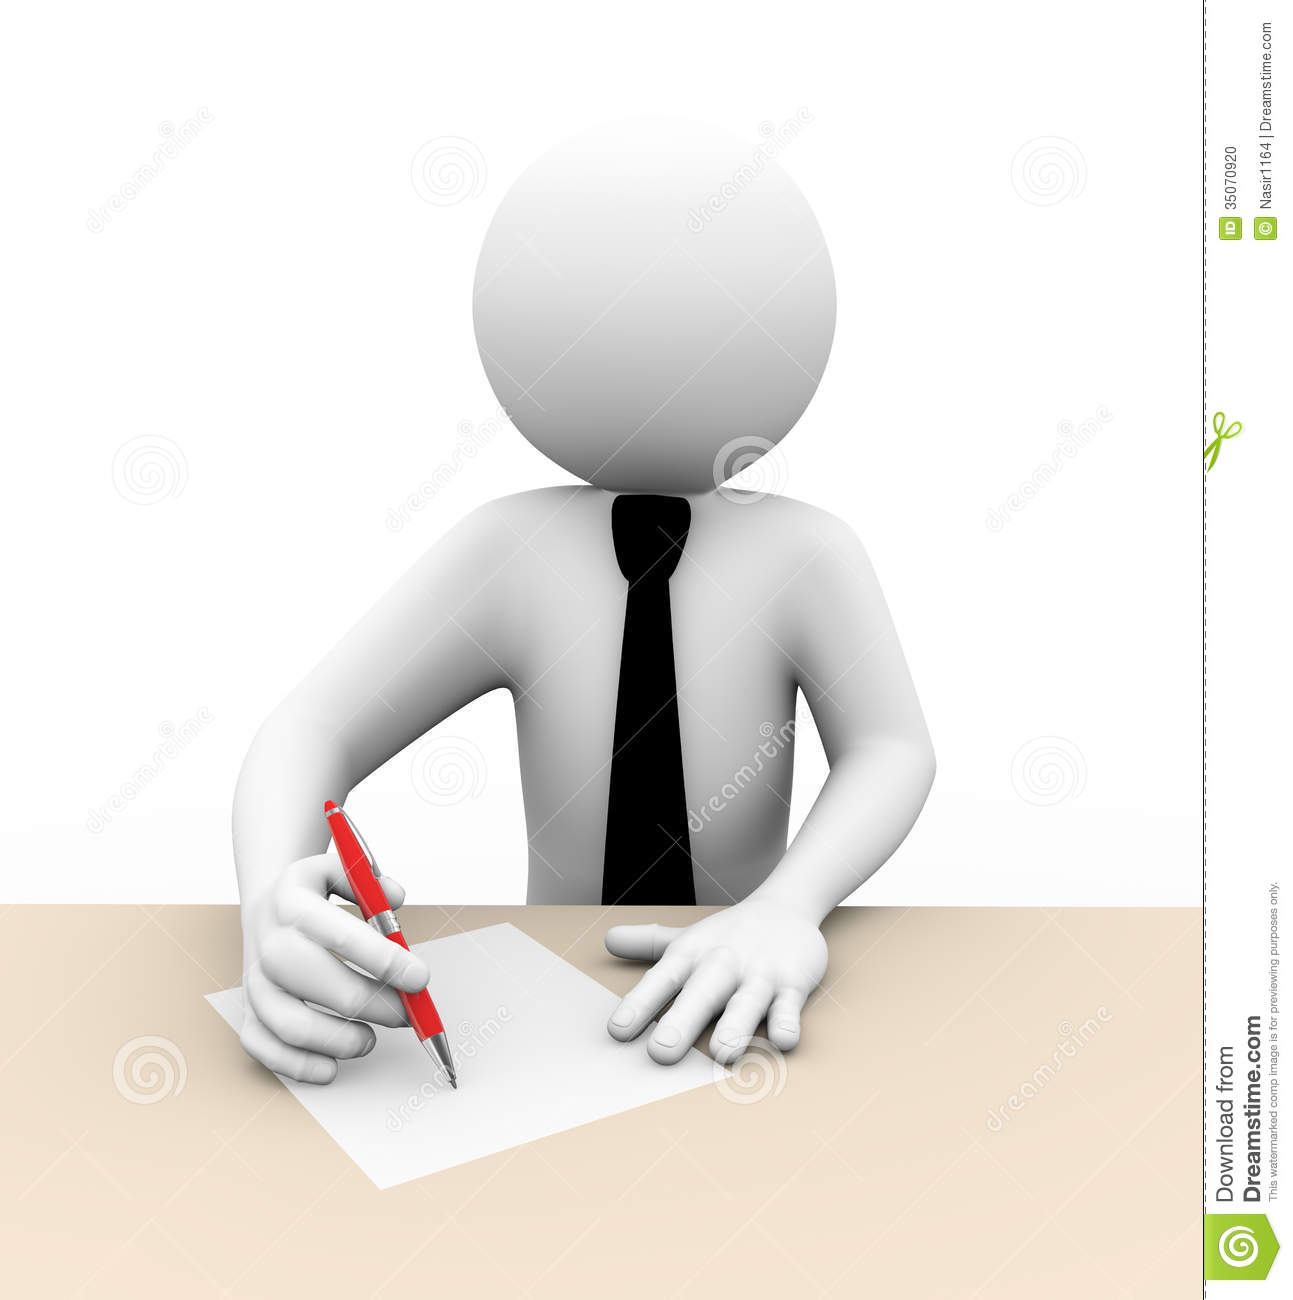 d-businessman-writing-illustration-rendering-business-person-paper-white-people-man-character-35070920.jpg